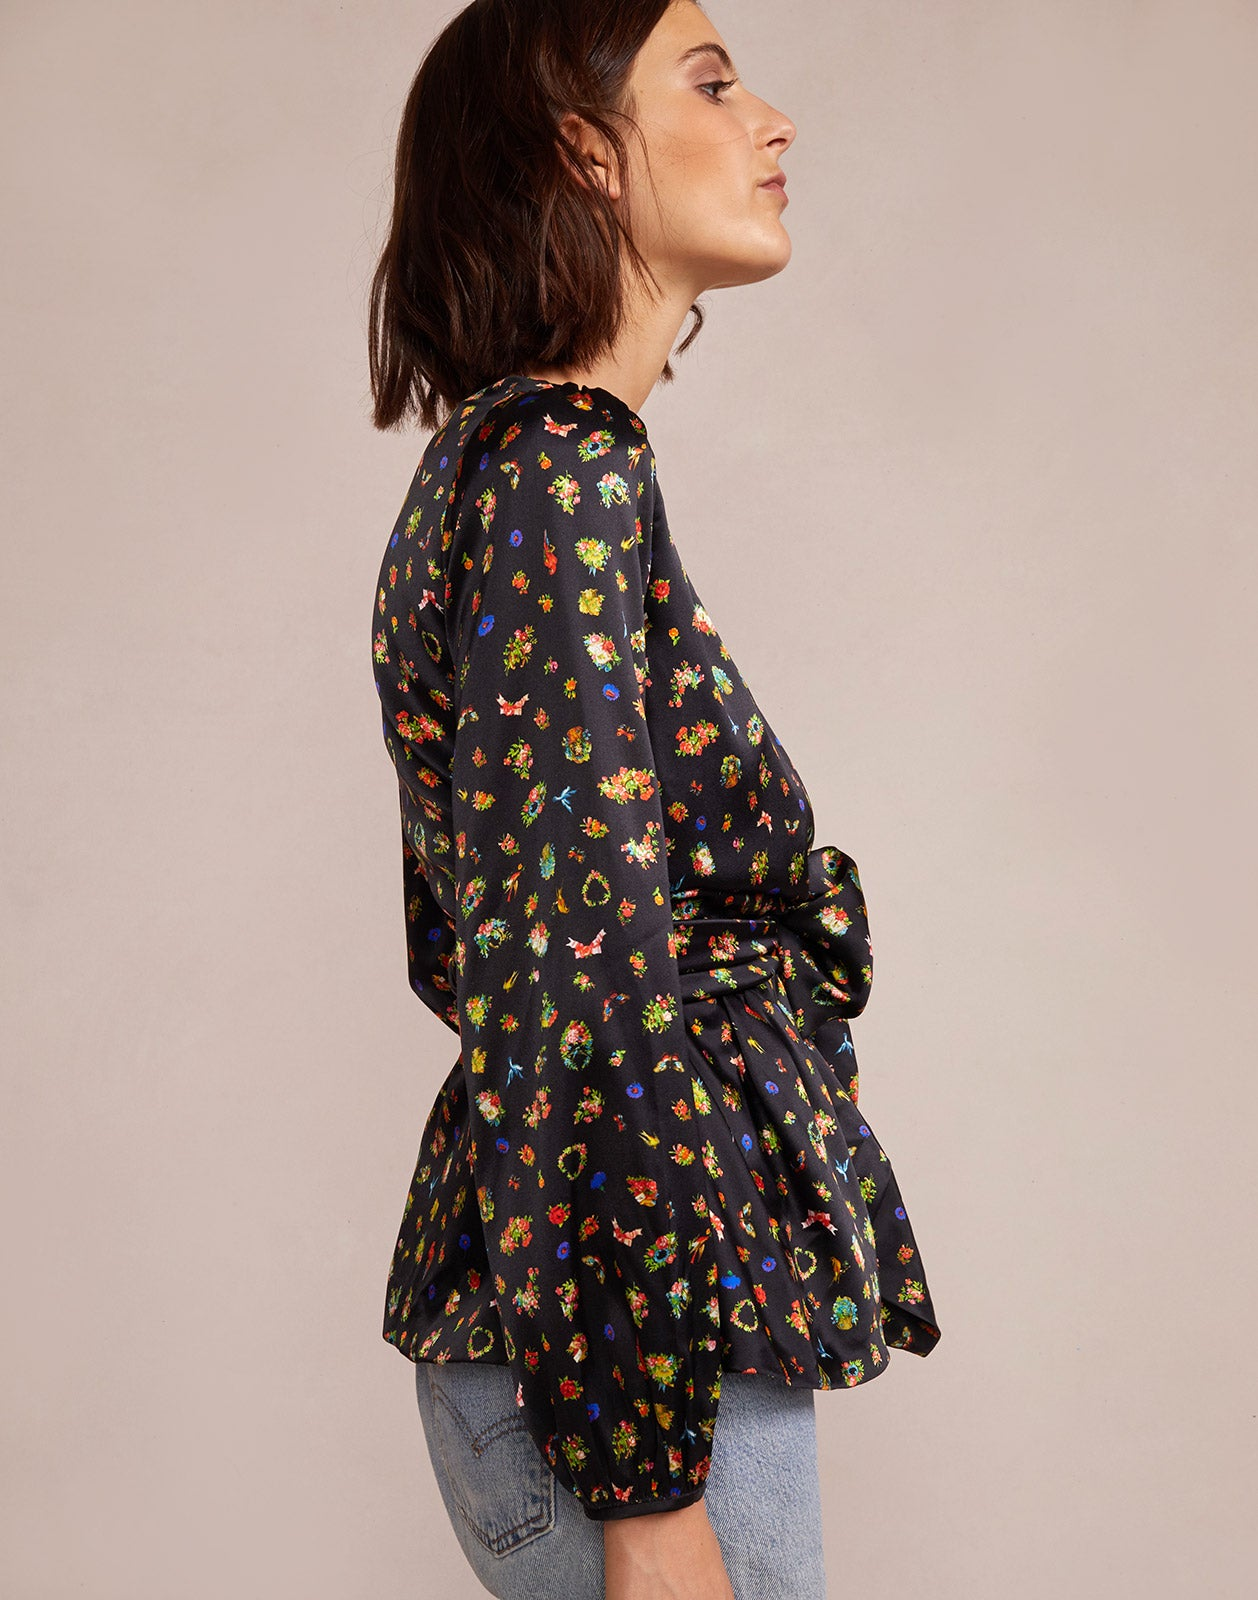 Side view of Mila Silk Wrap Blouse with mini flower, bird, and butterflies print.